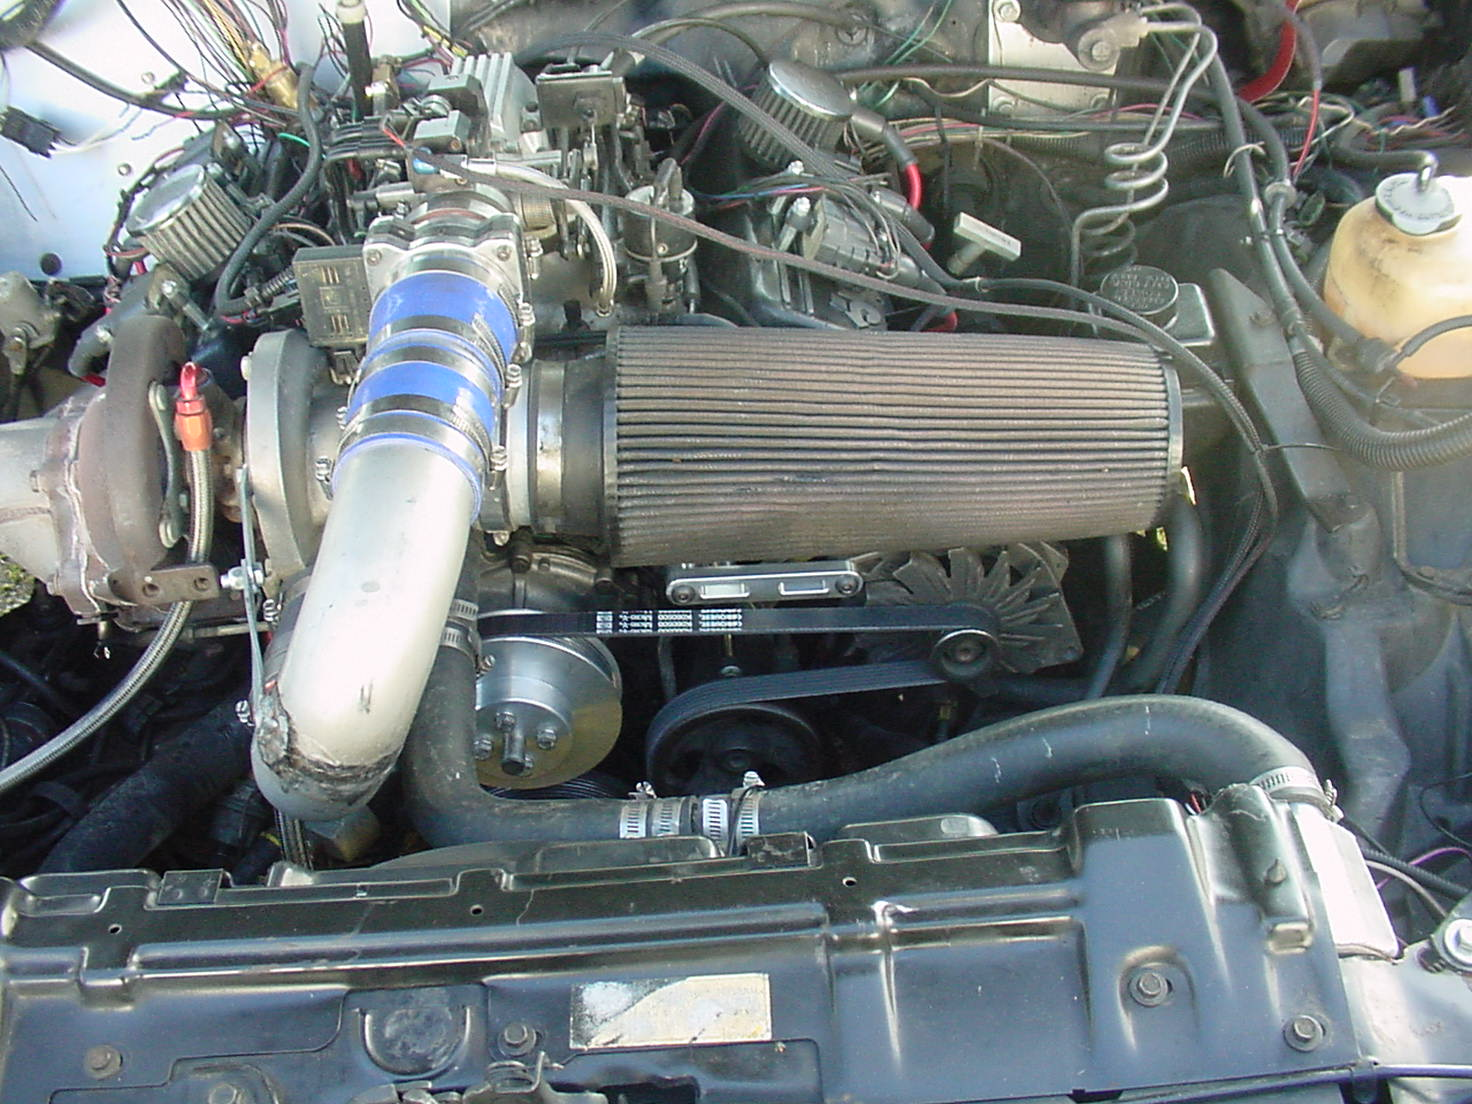 Removing the Intercooler